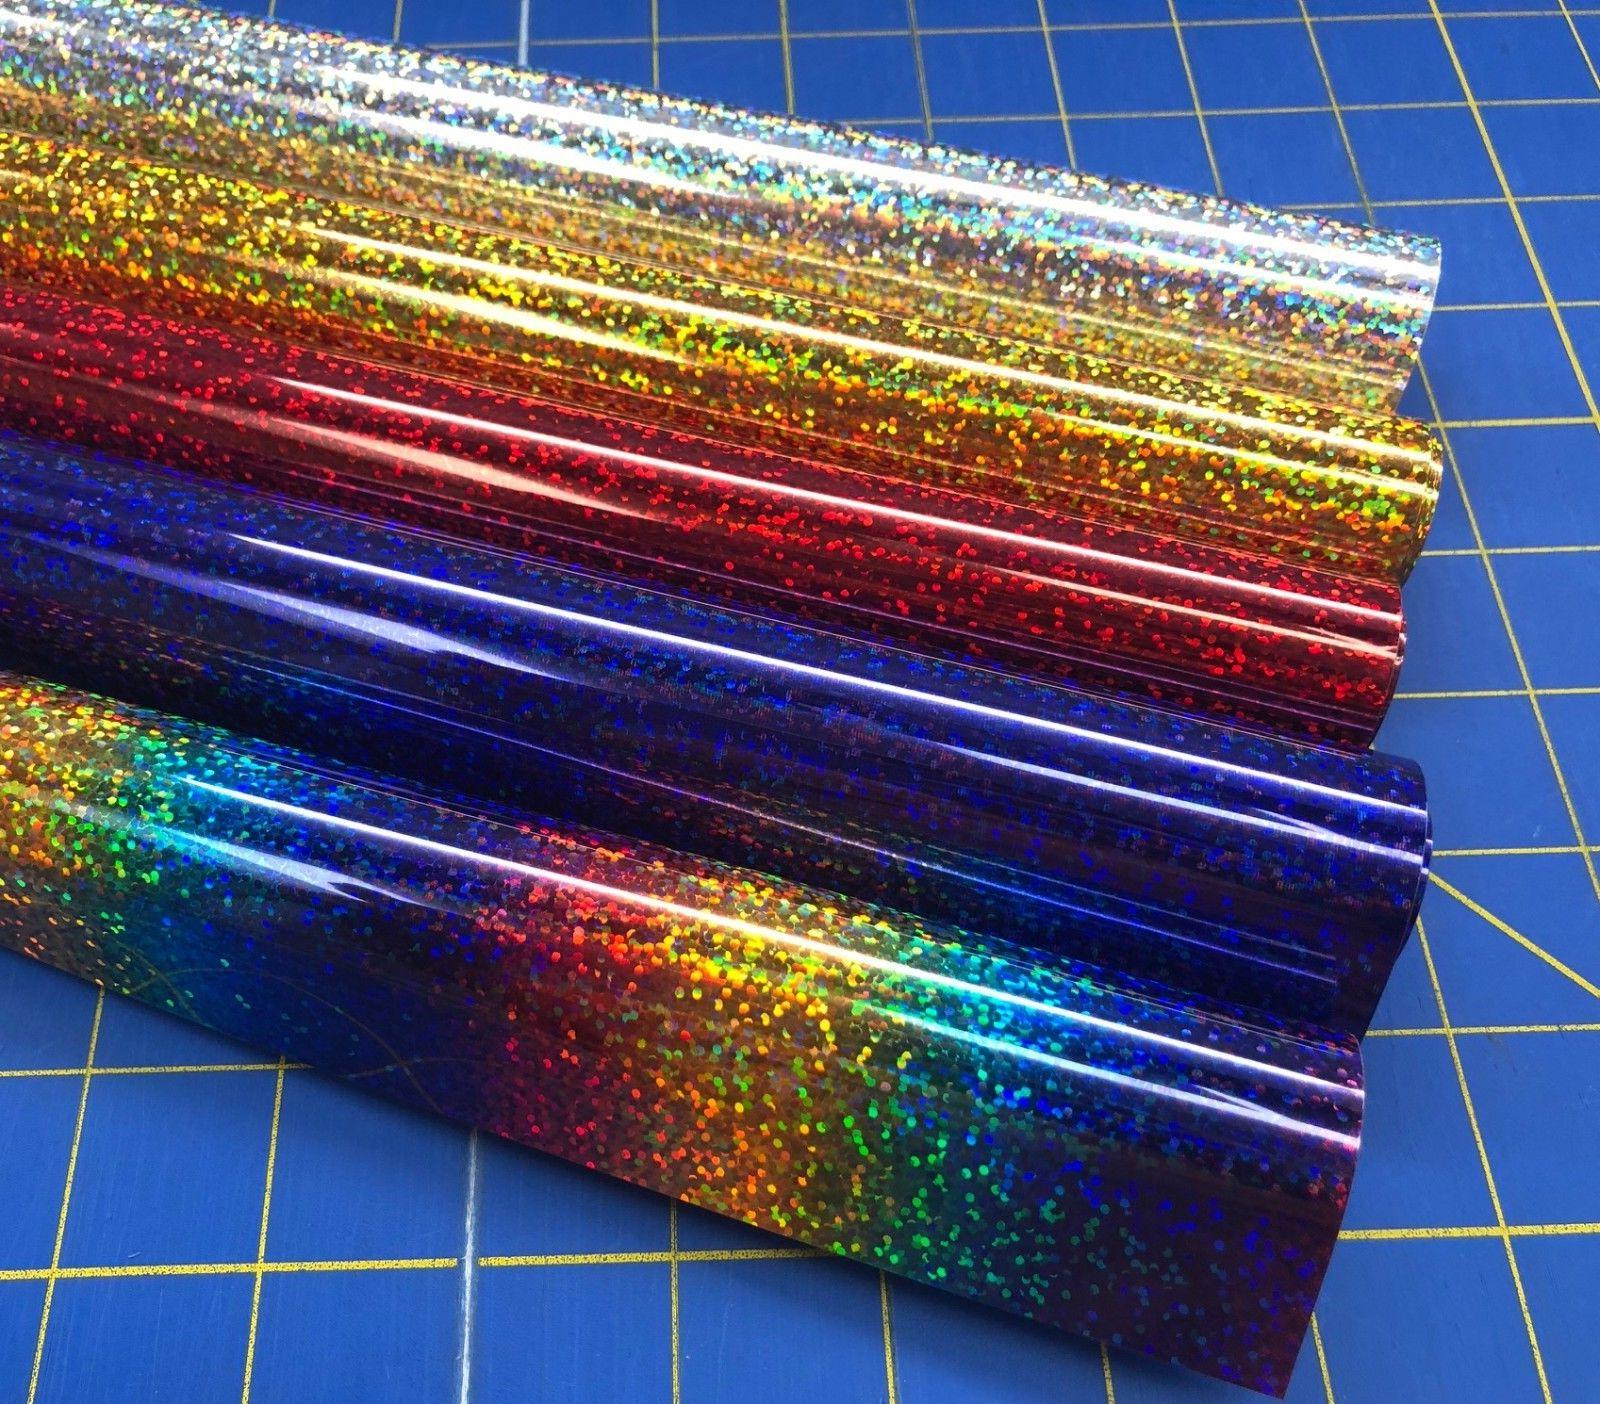 Siser Holographic Iron On Heat Transfer 5 Ft Roll for Cricut